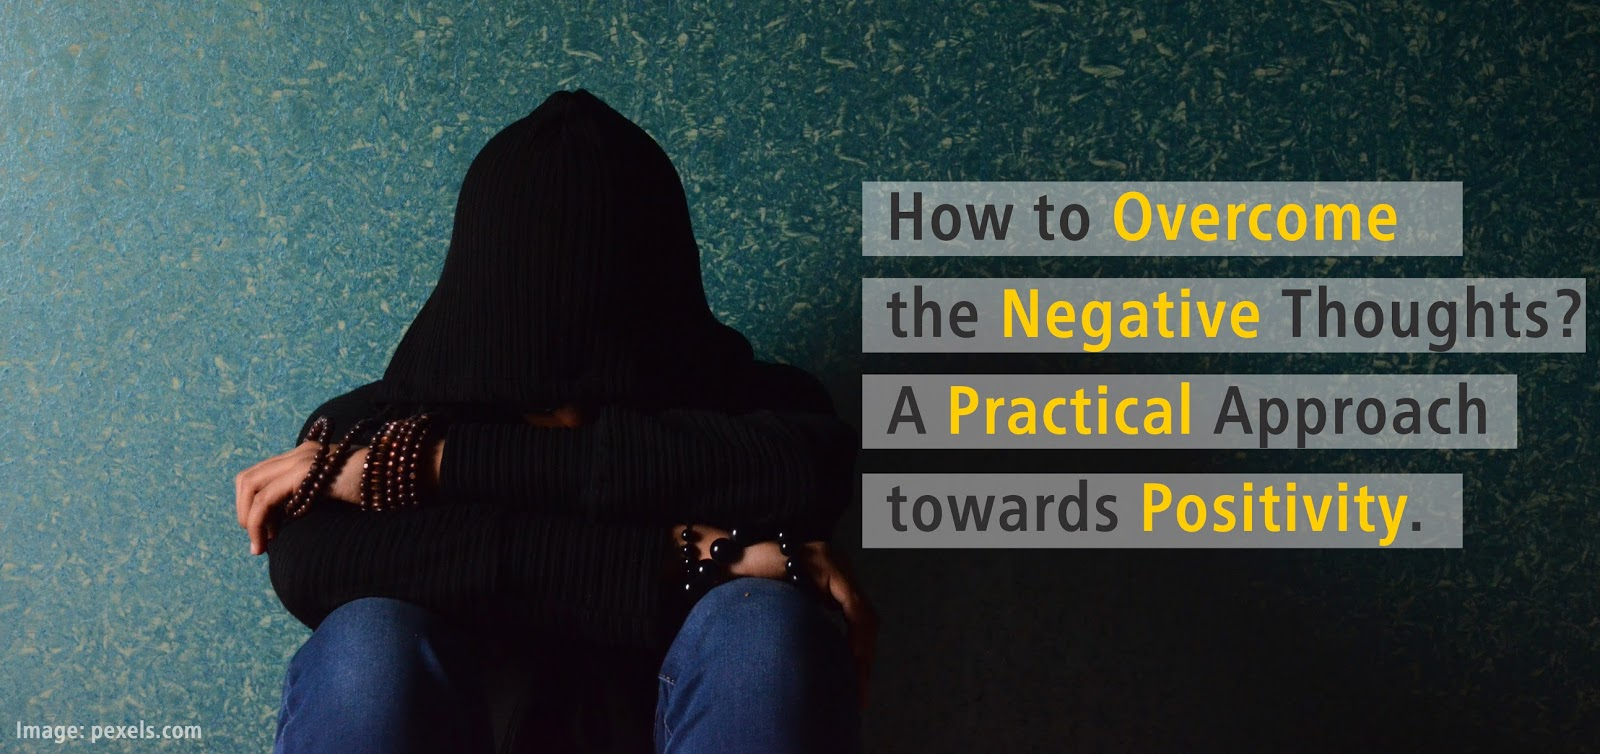 Learn how to tap into the positive and manage the negative.